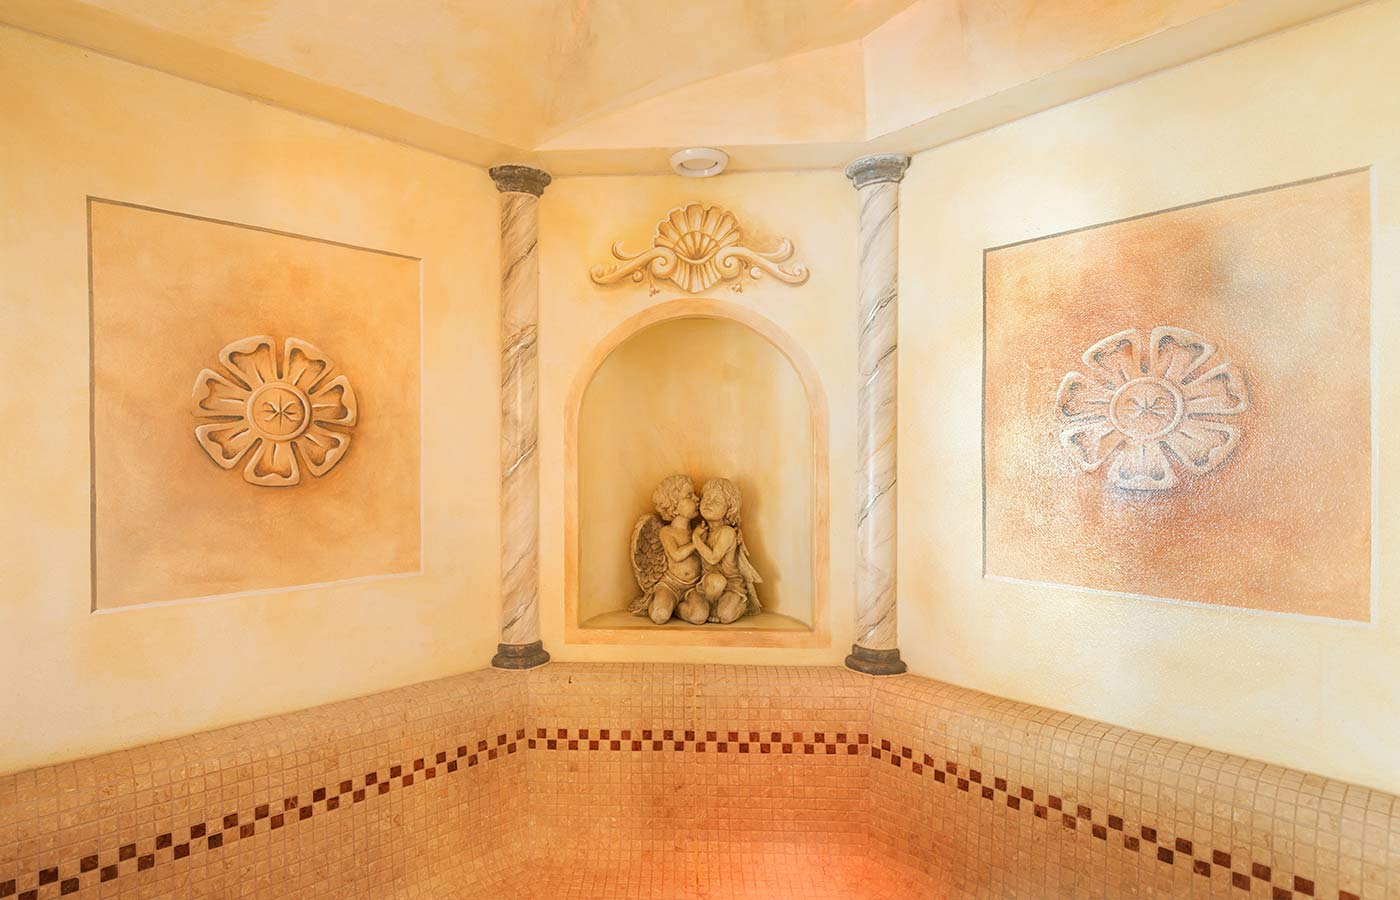 Mosaics and frescoes on the walls of the hammam in the spa at Hotel Waldheim